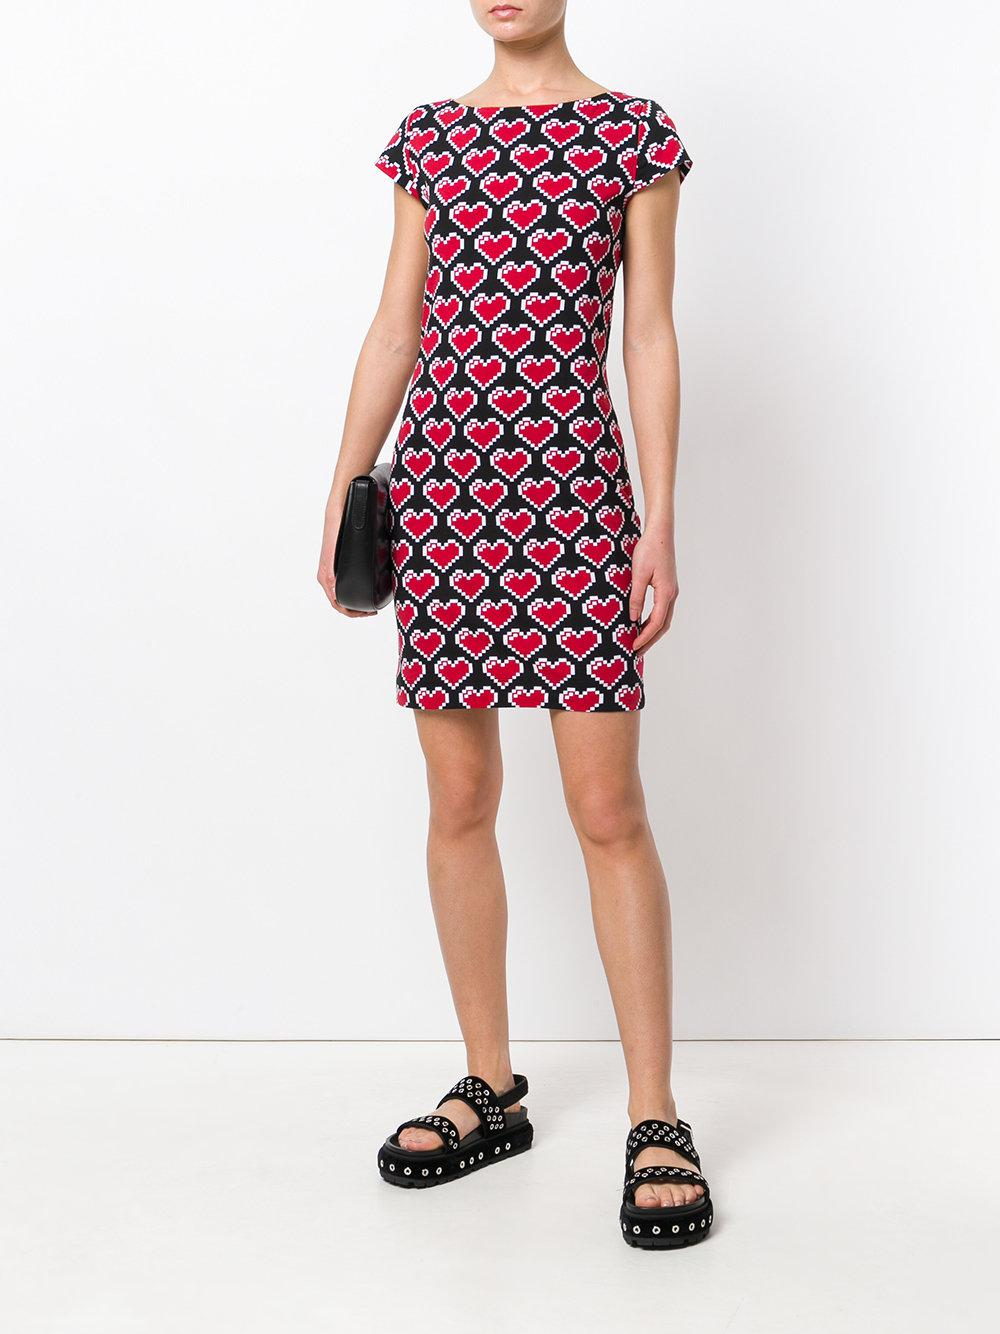 4155c159846 Love Moschino Heart Pixel Dress in Black - Lyst